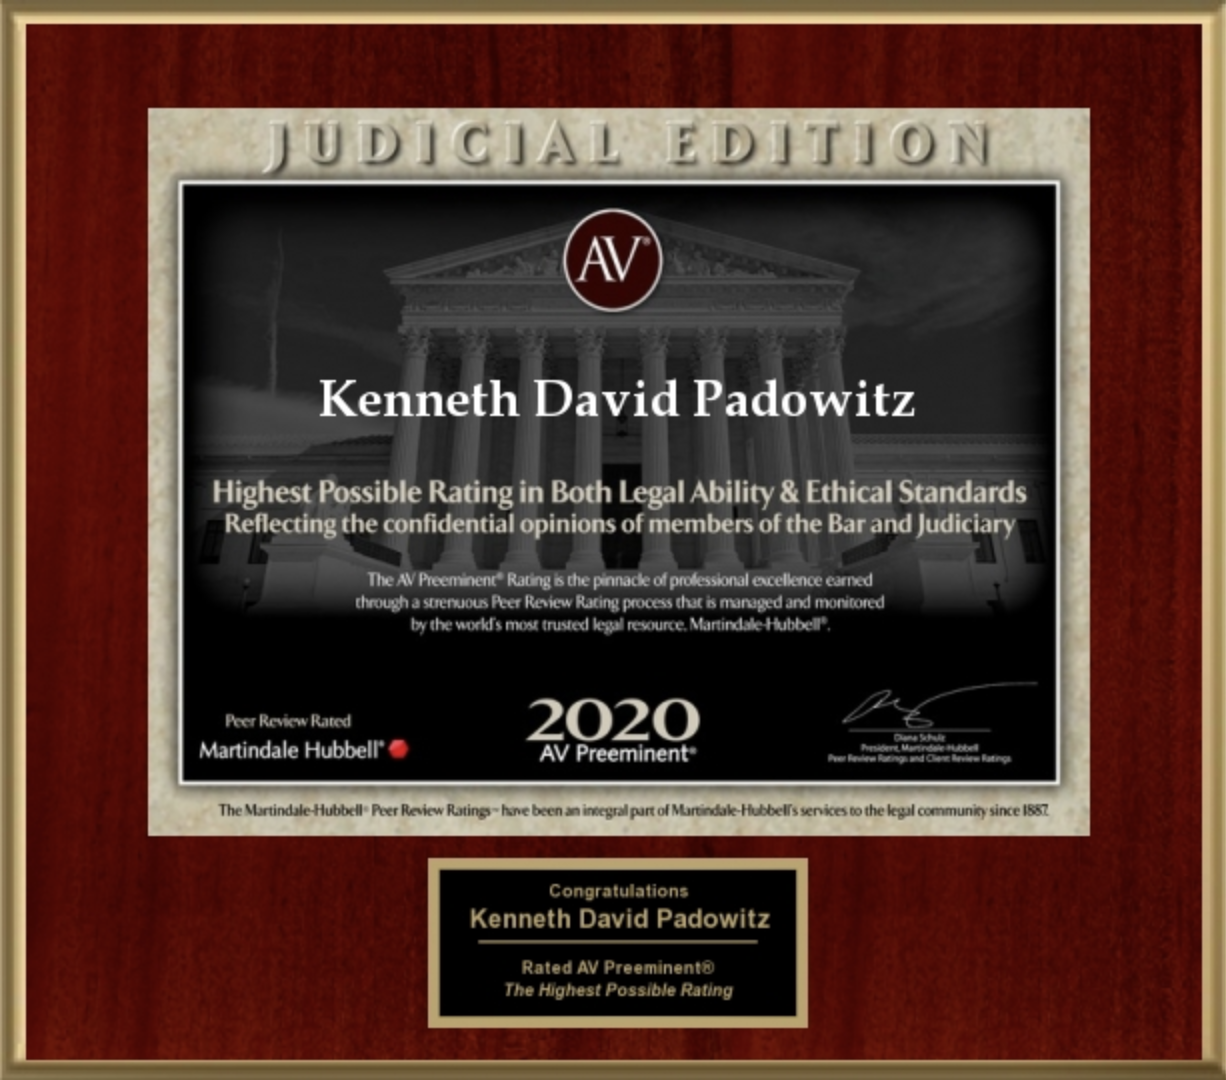 KEN PADOWITZ RECEIVES TOP AV RATING FOR 15 YEARS